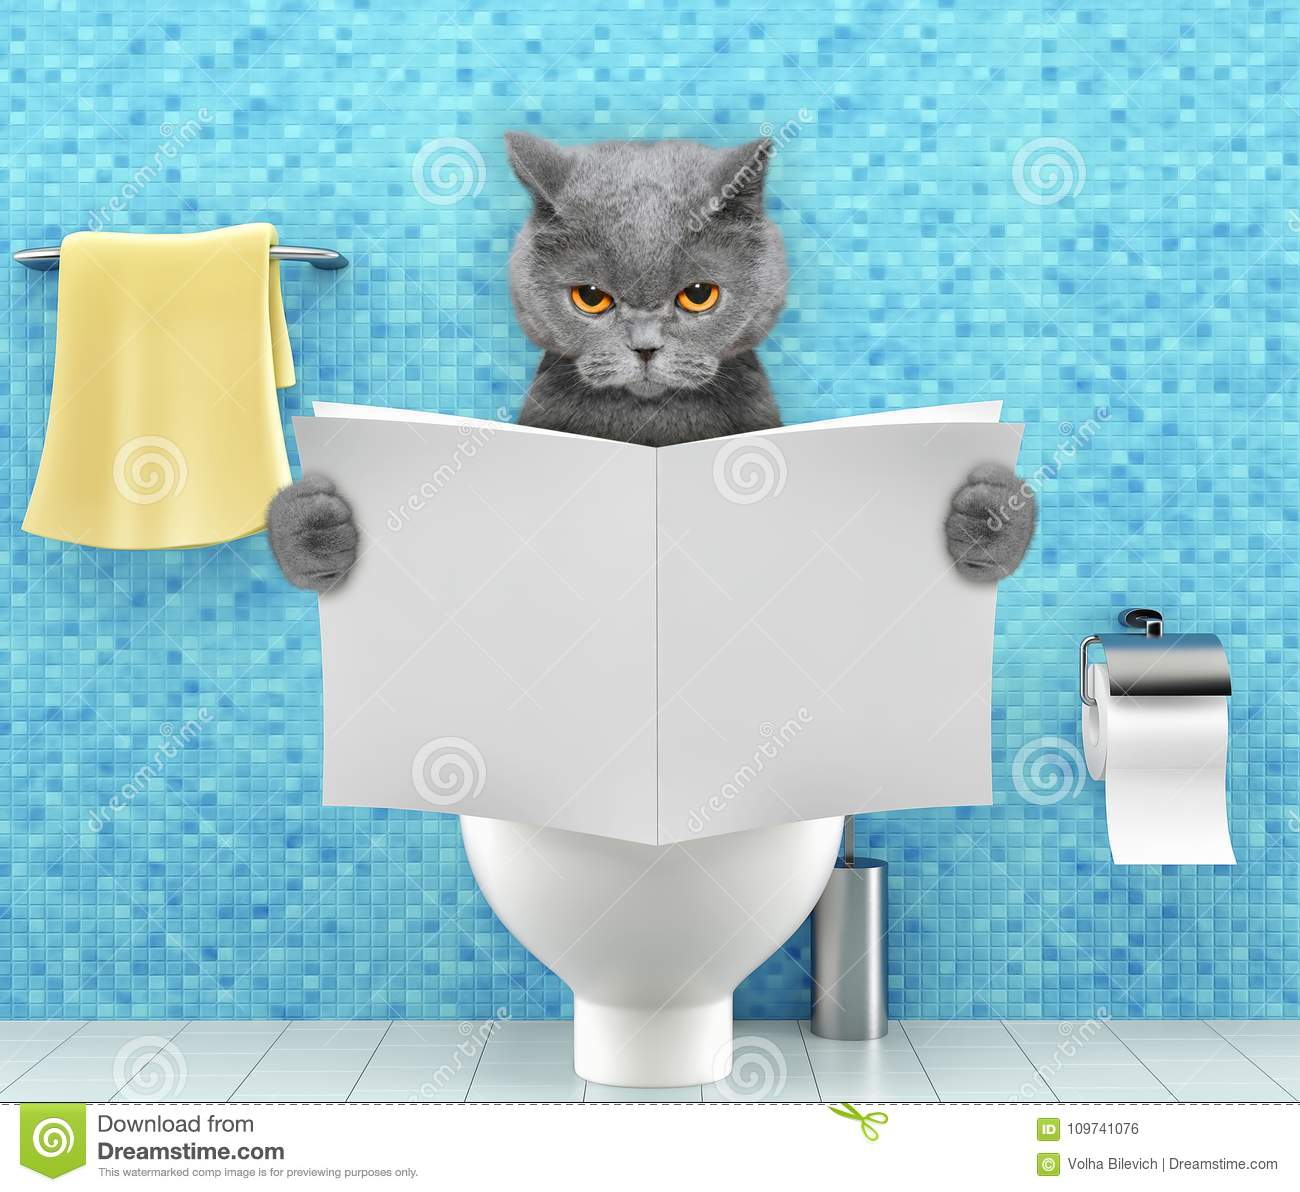 Angry cat sitting on a toilet seat with digestion problems or constipation reading magazine or newspaper